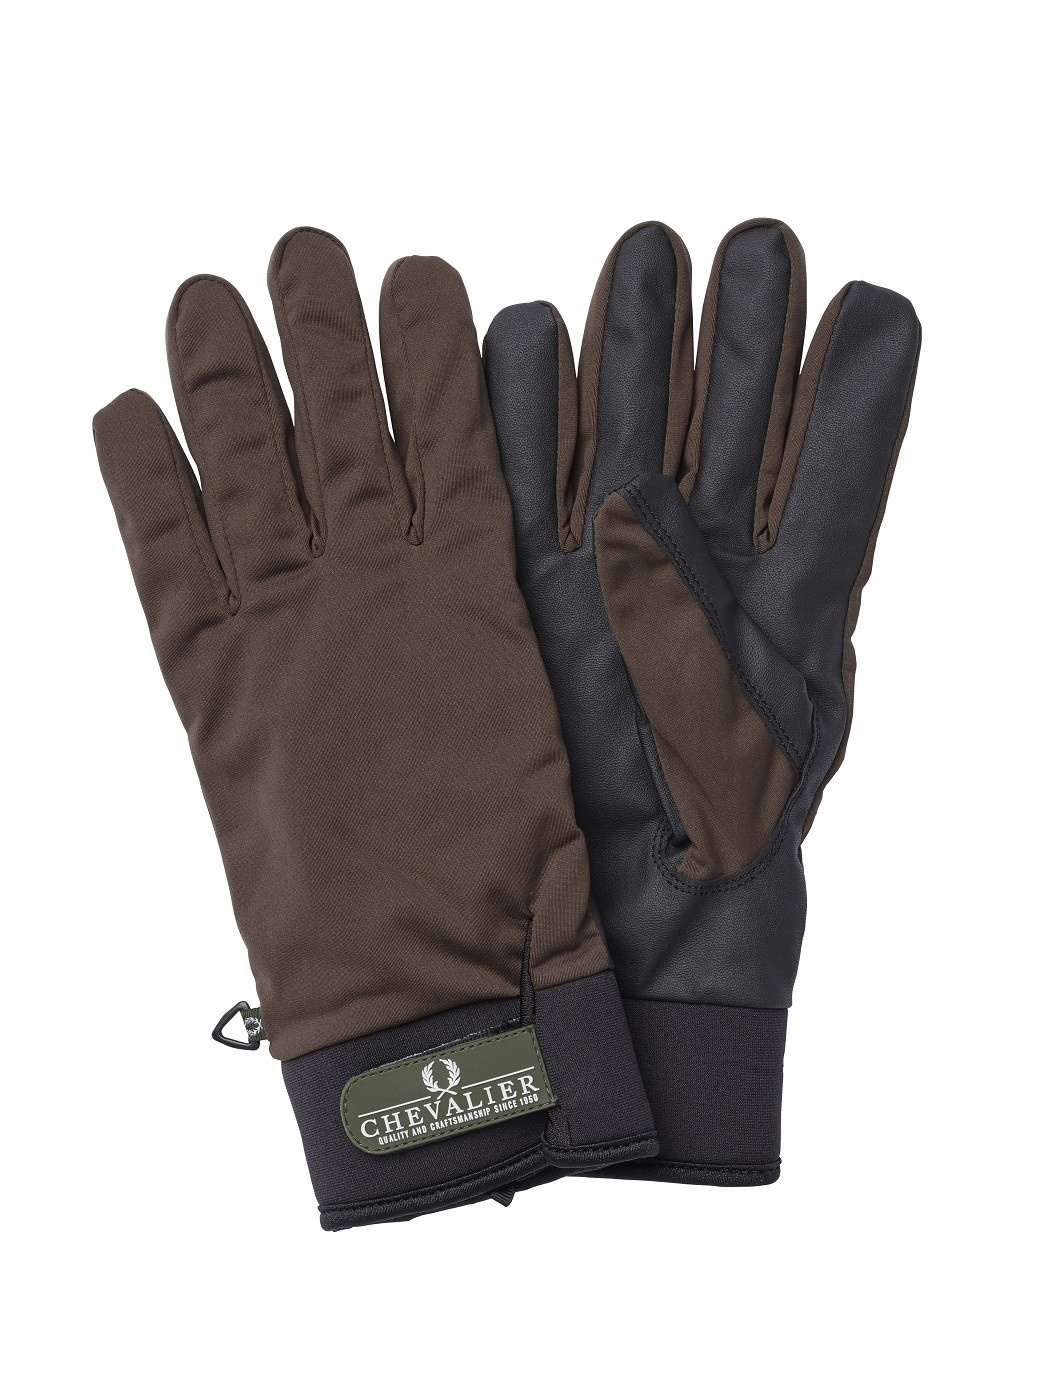 Chevalier Shooting Glove No Slip Lined Brown-1